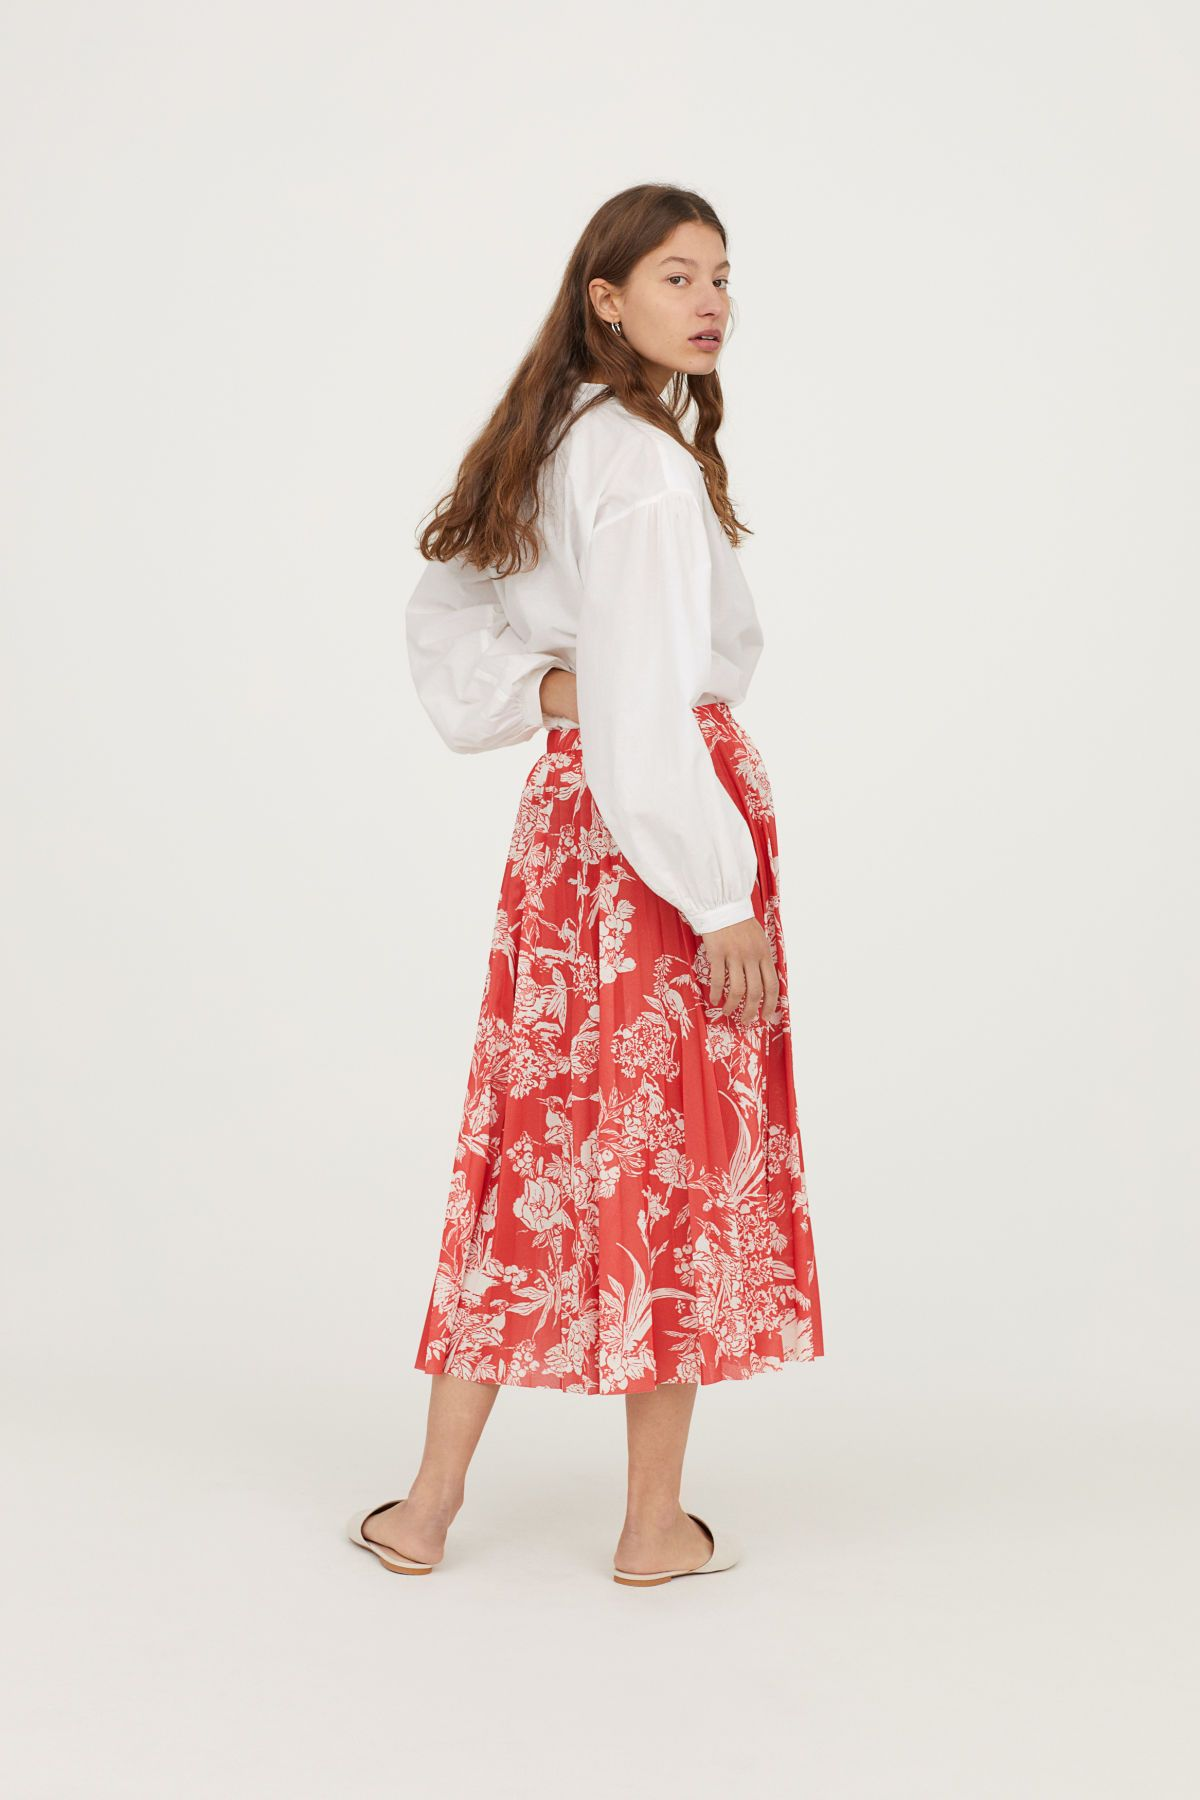 a58f09c2d Pleated Skirt | Bright red/patterned | WOMEN | H&M US | floral in ...